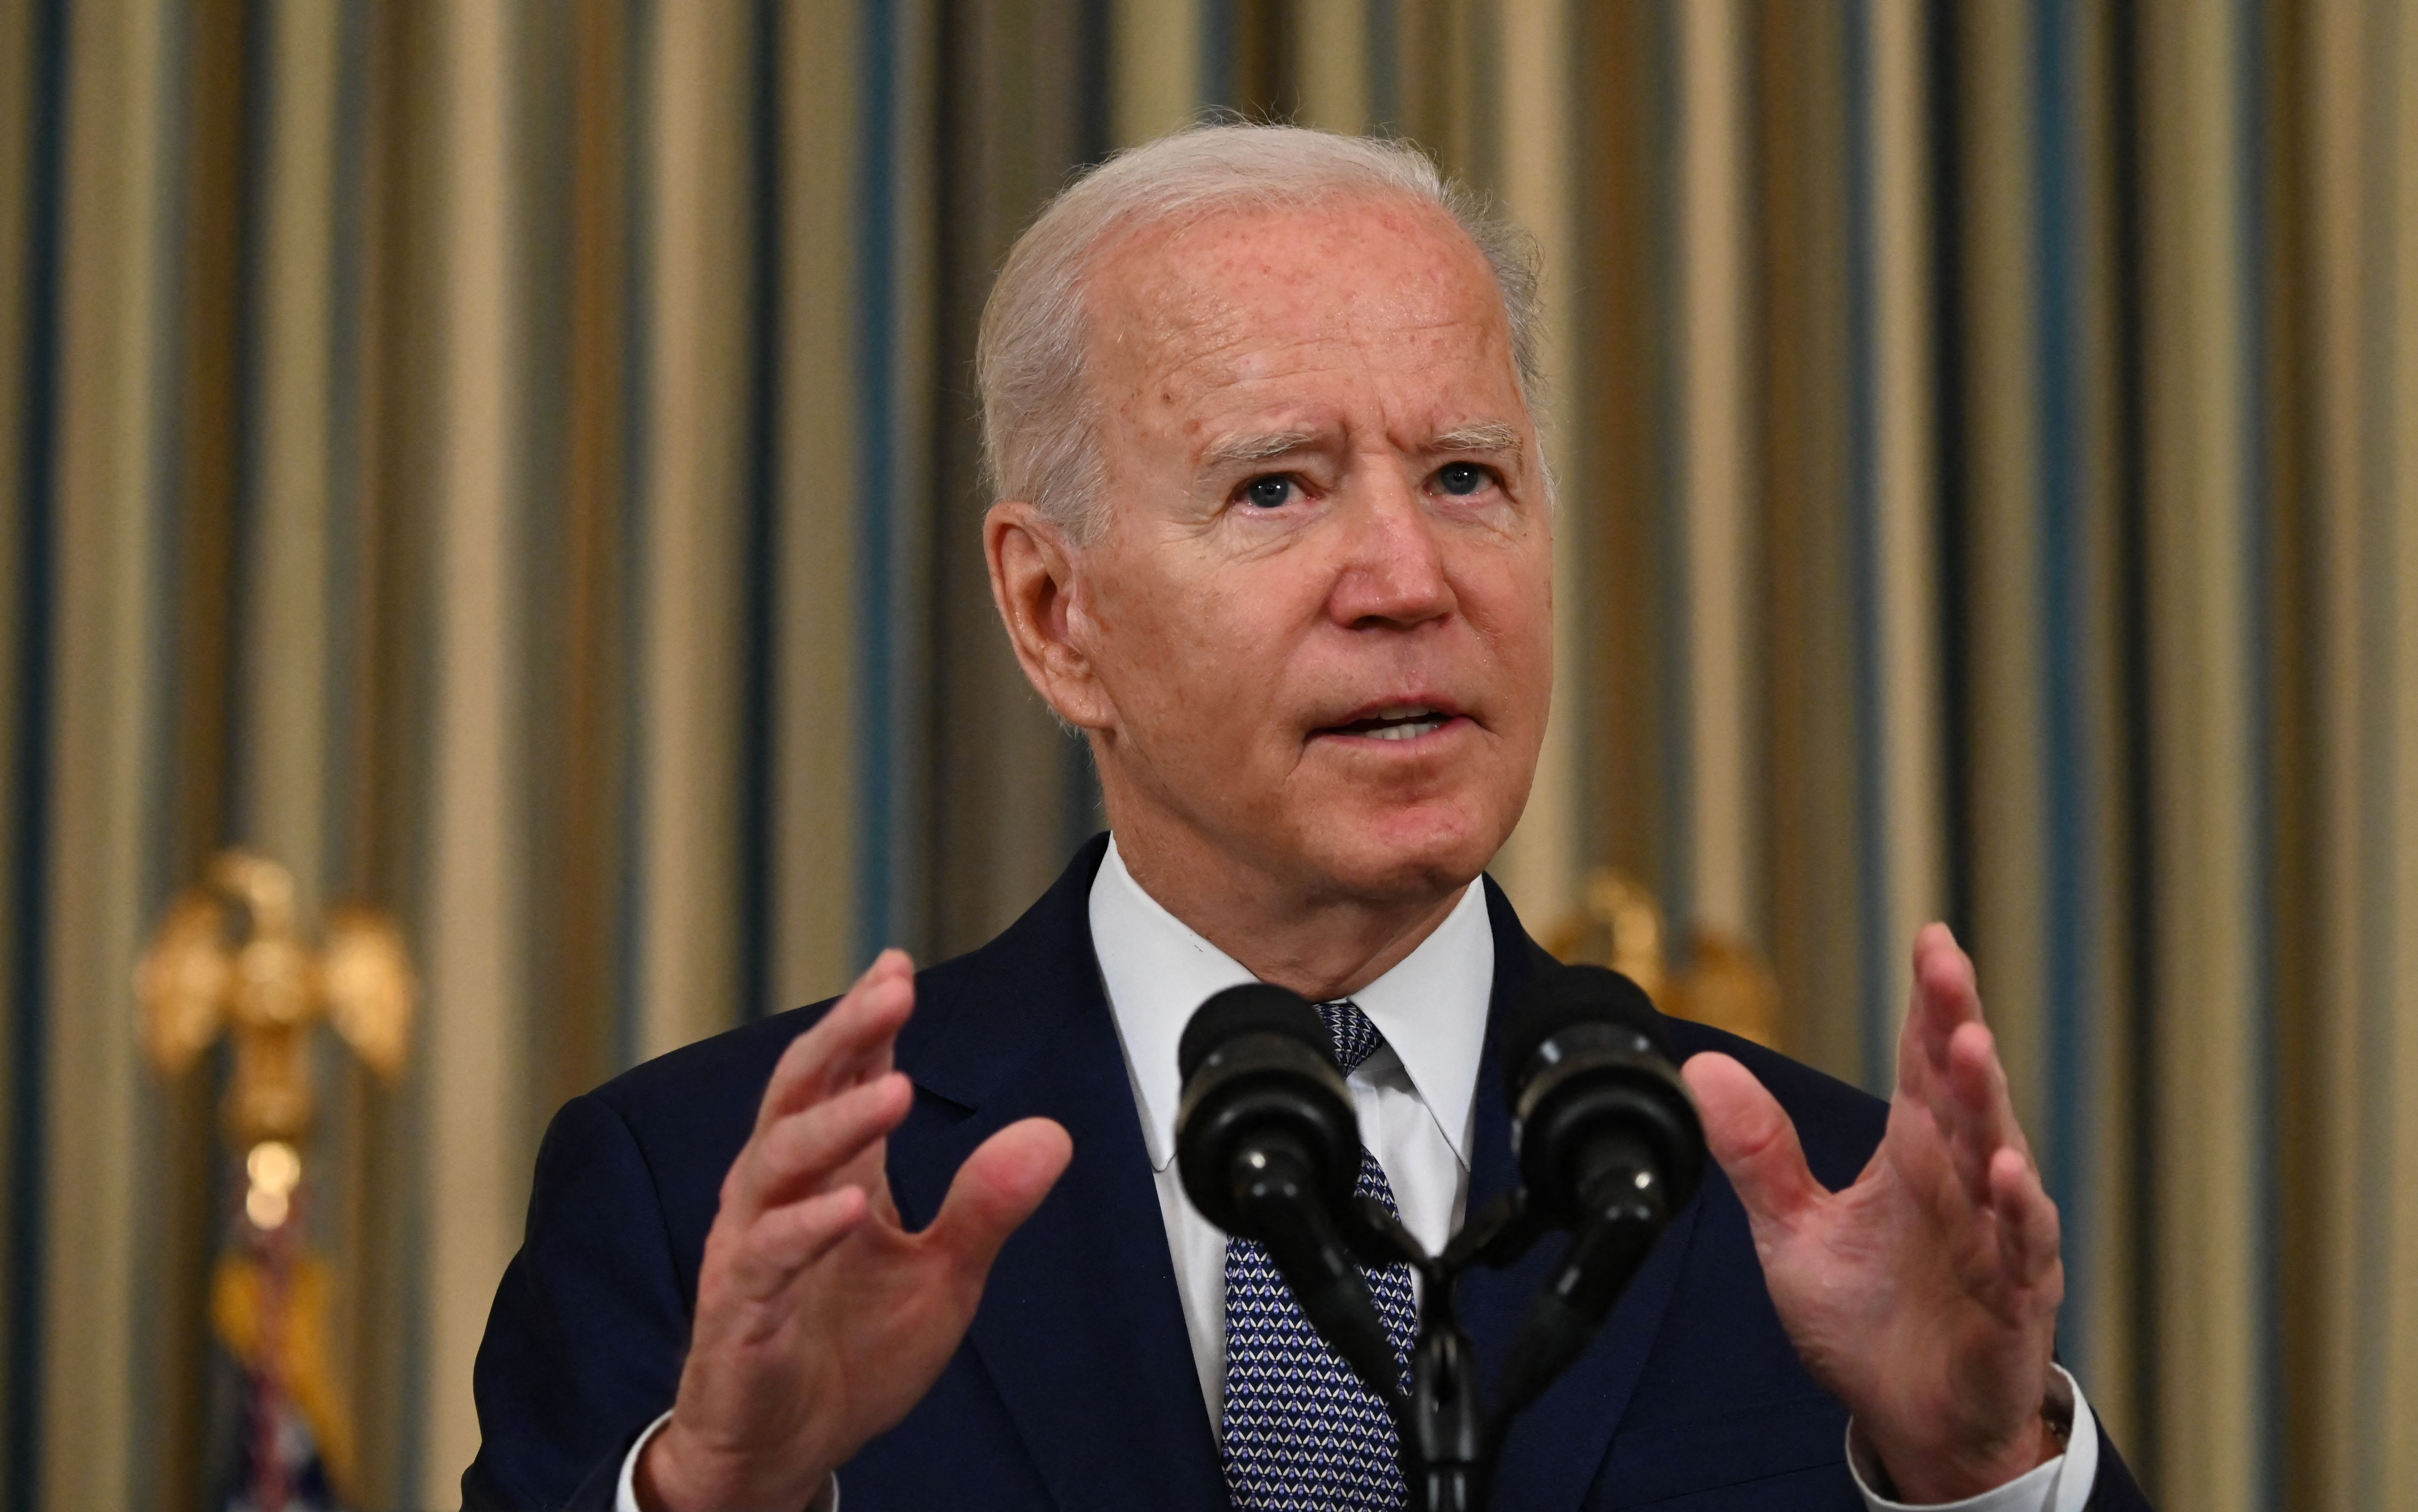 Joe Biden delivers remarks on the August jobs report in the State Dining Room at the White House in Washington, D.C. (Photo by JIM WATSON/AFP via Getty Images)